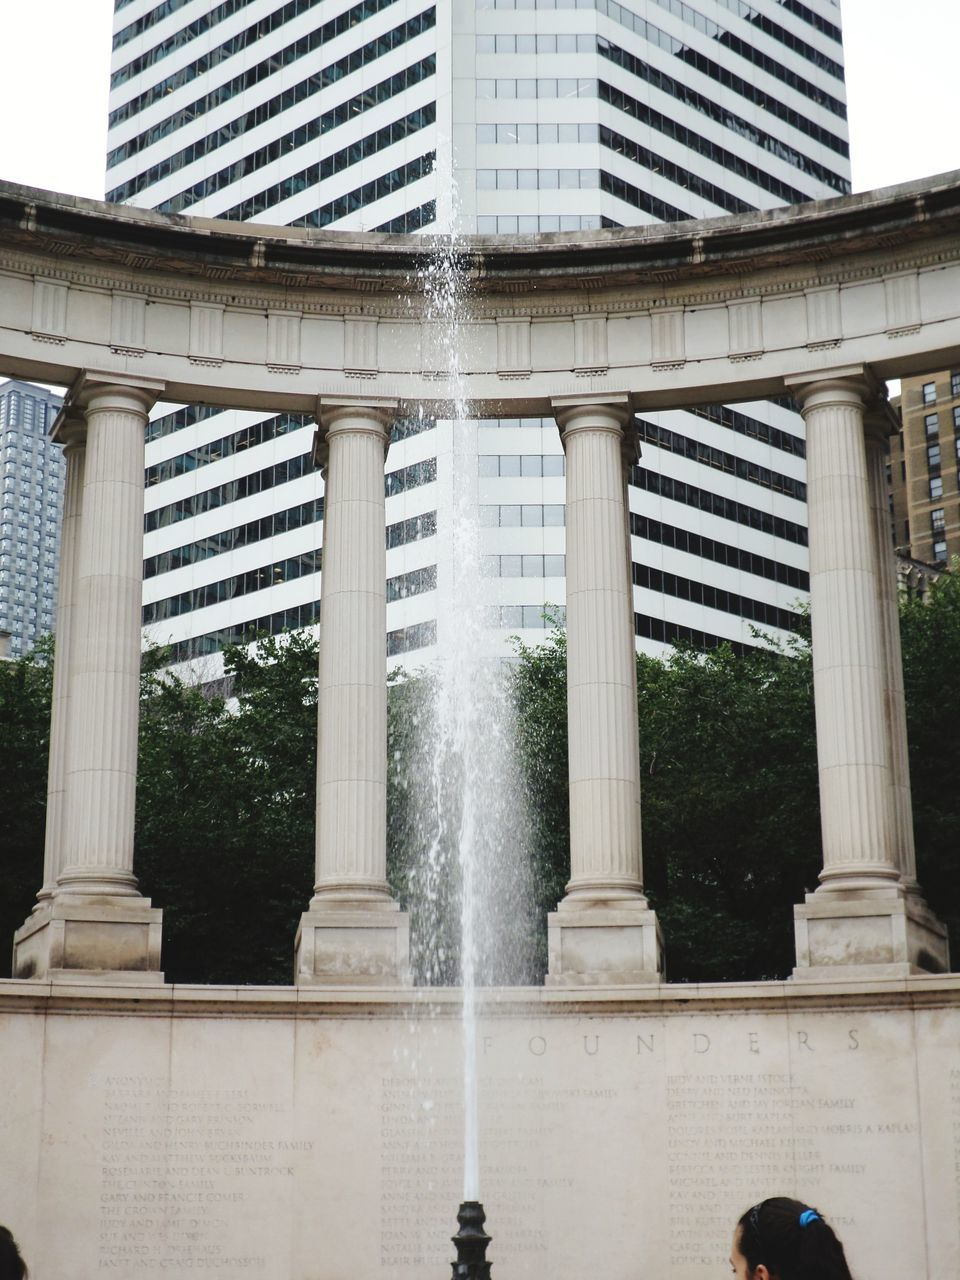 Low Angle View Of Fountain In City